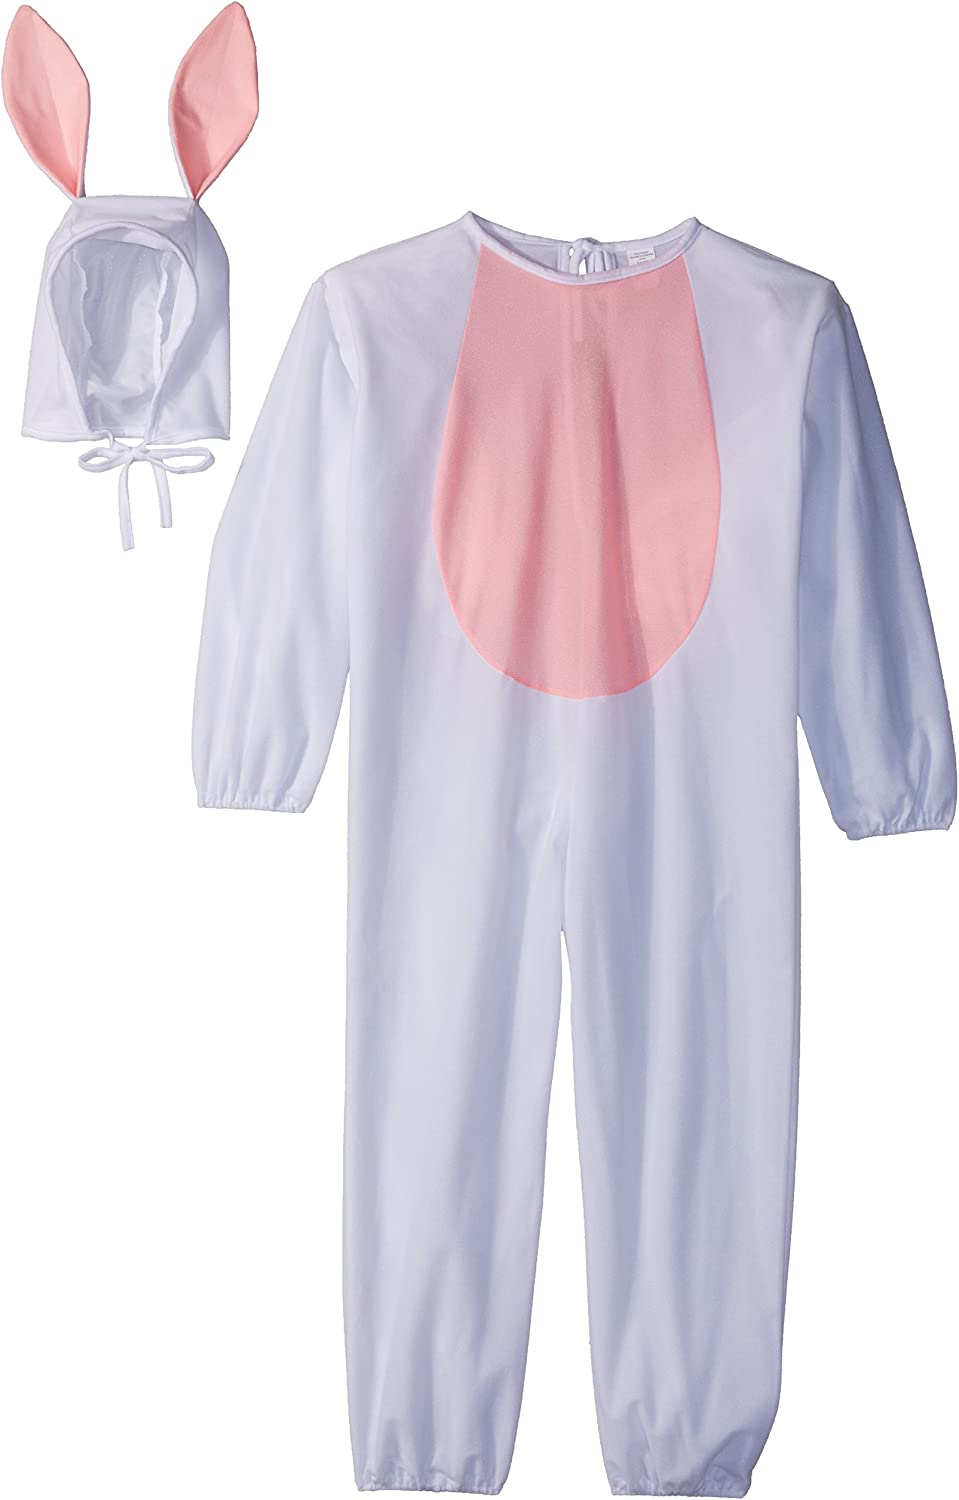 B0010L8GFE Child Large 12-14 for 8-10 Yrs. - Economy Bunny Costume (Ears do NOT Stand up as Pictured. Socks and 71z09WI1BJL